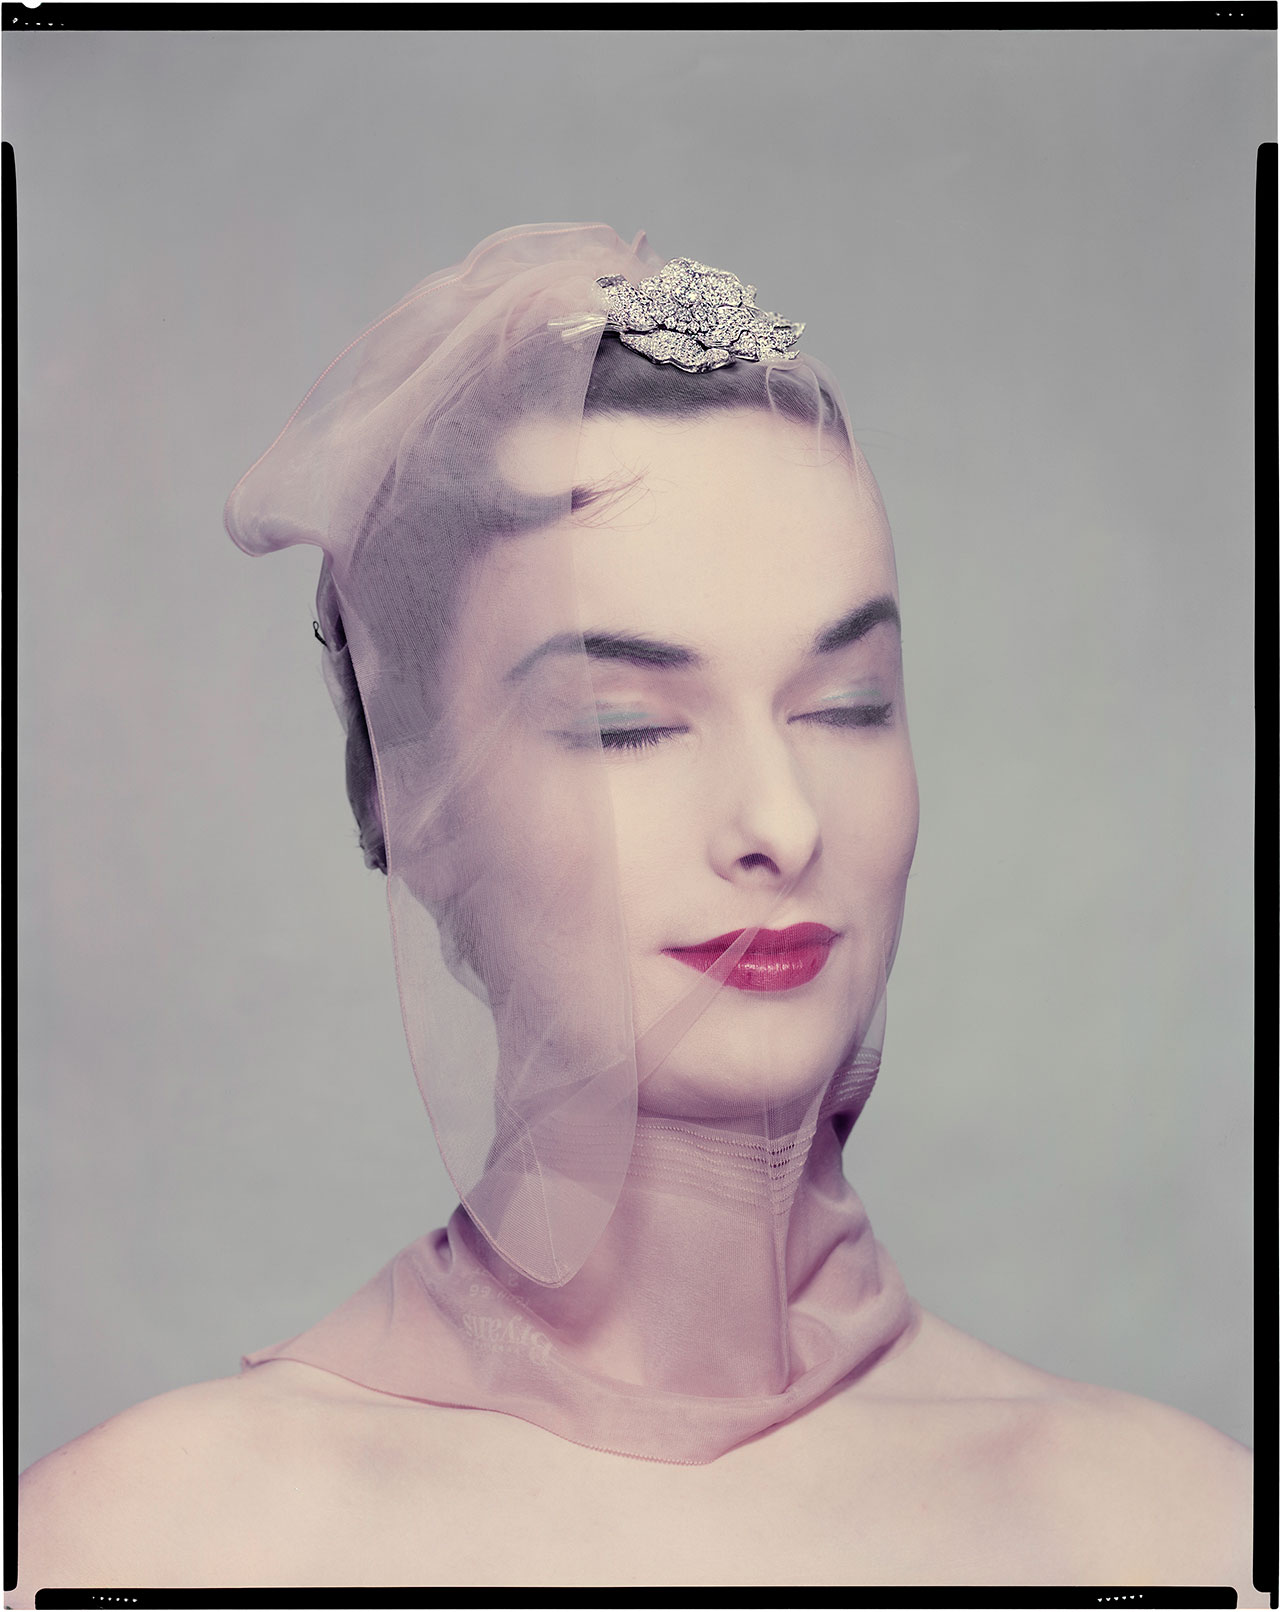 Variant of the photo published in Vogue US, 1st April 1954 «beauty ready to sleep». Model: Victoria von Hagen © The Estate of Erwin Blumenfeld.